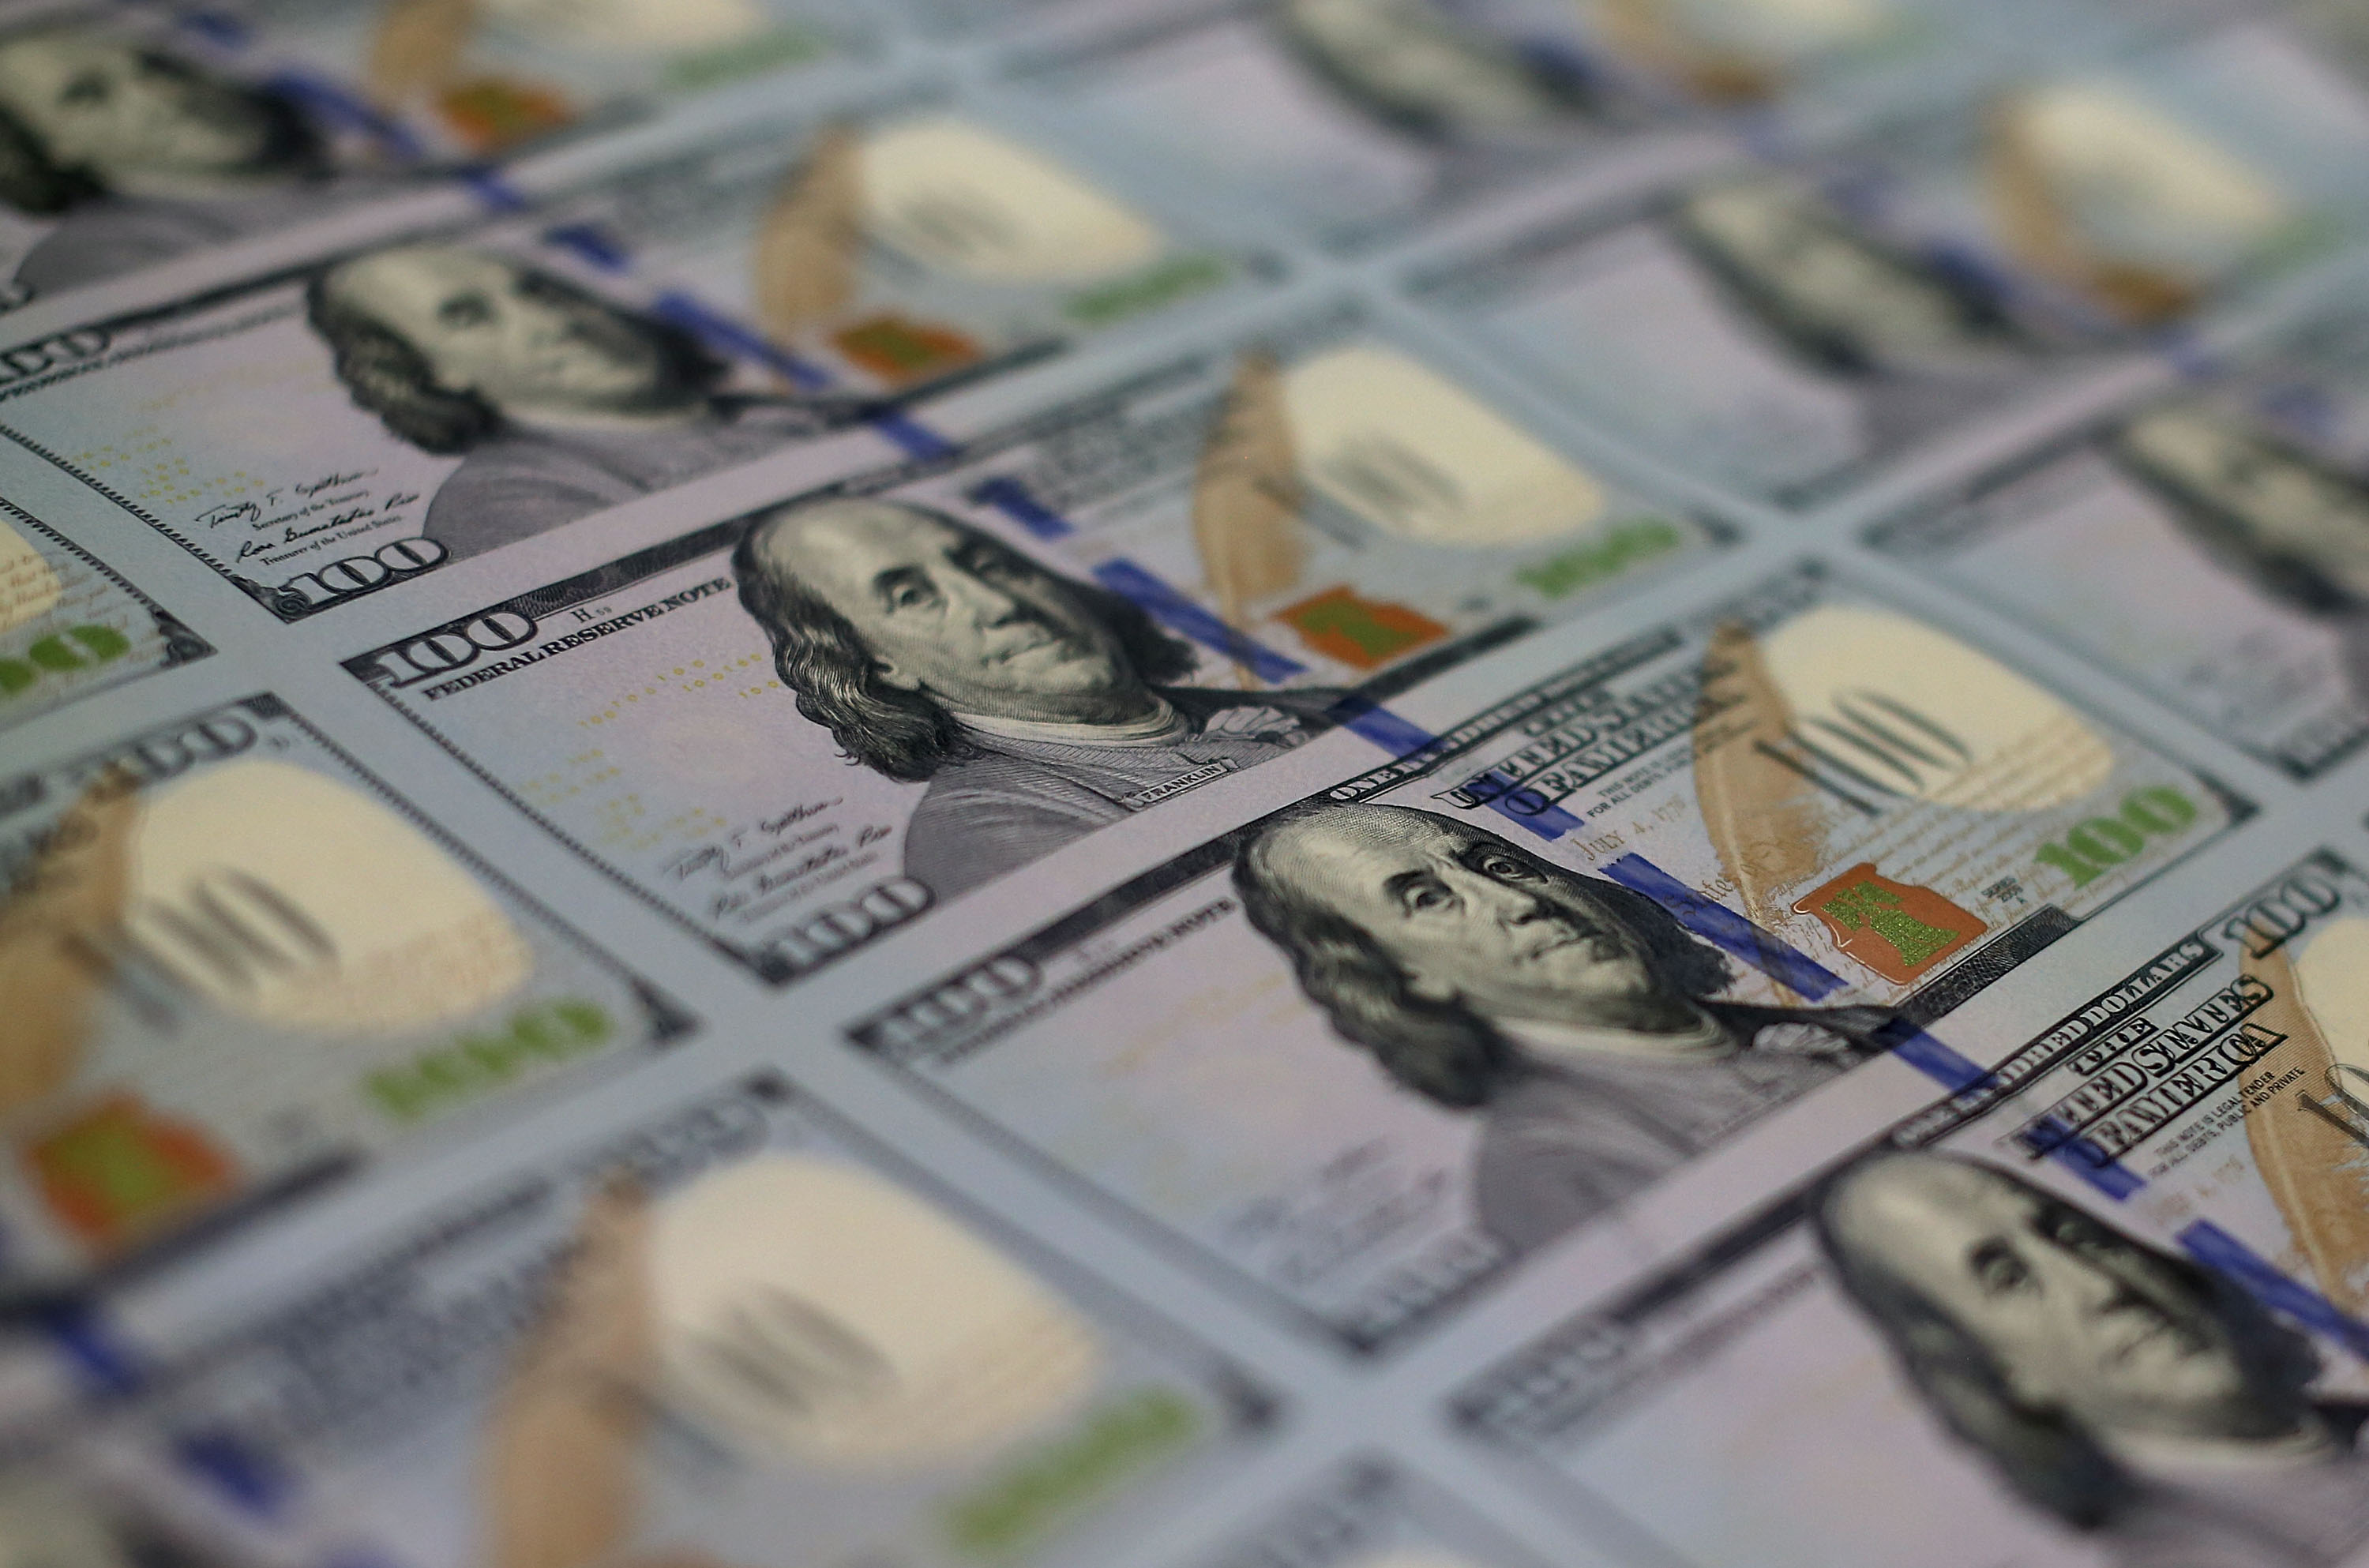 Bureau Of Engraving And Printing Prints New Anti-Counterfeit 100 Dollar Bills